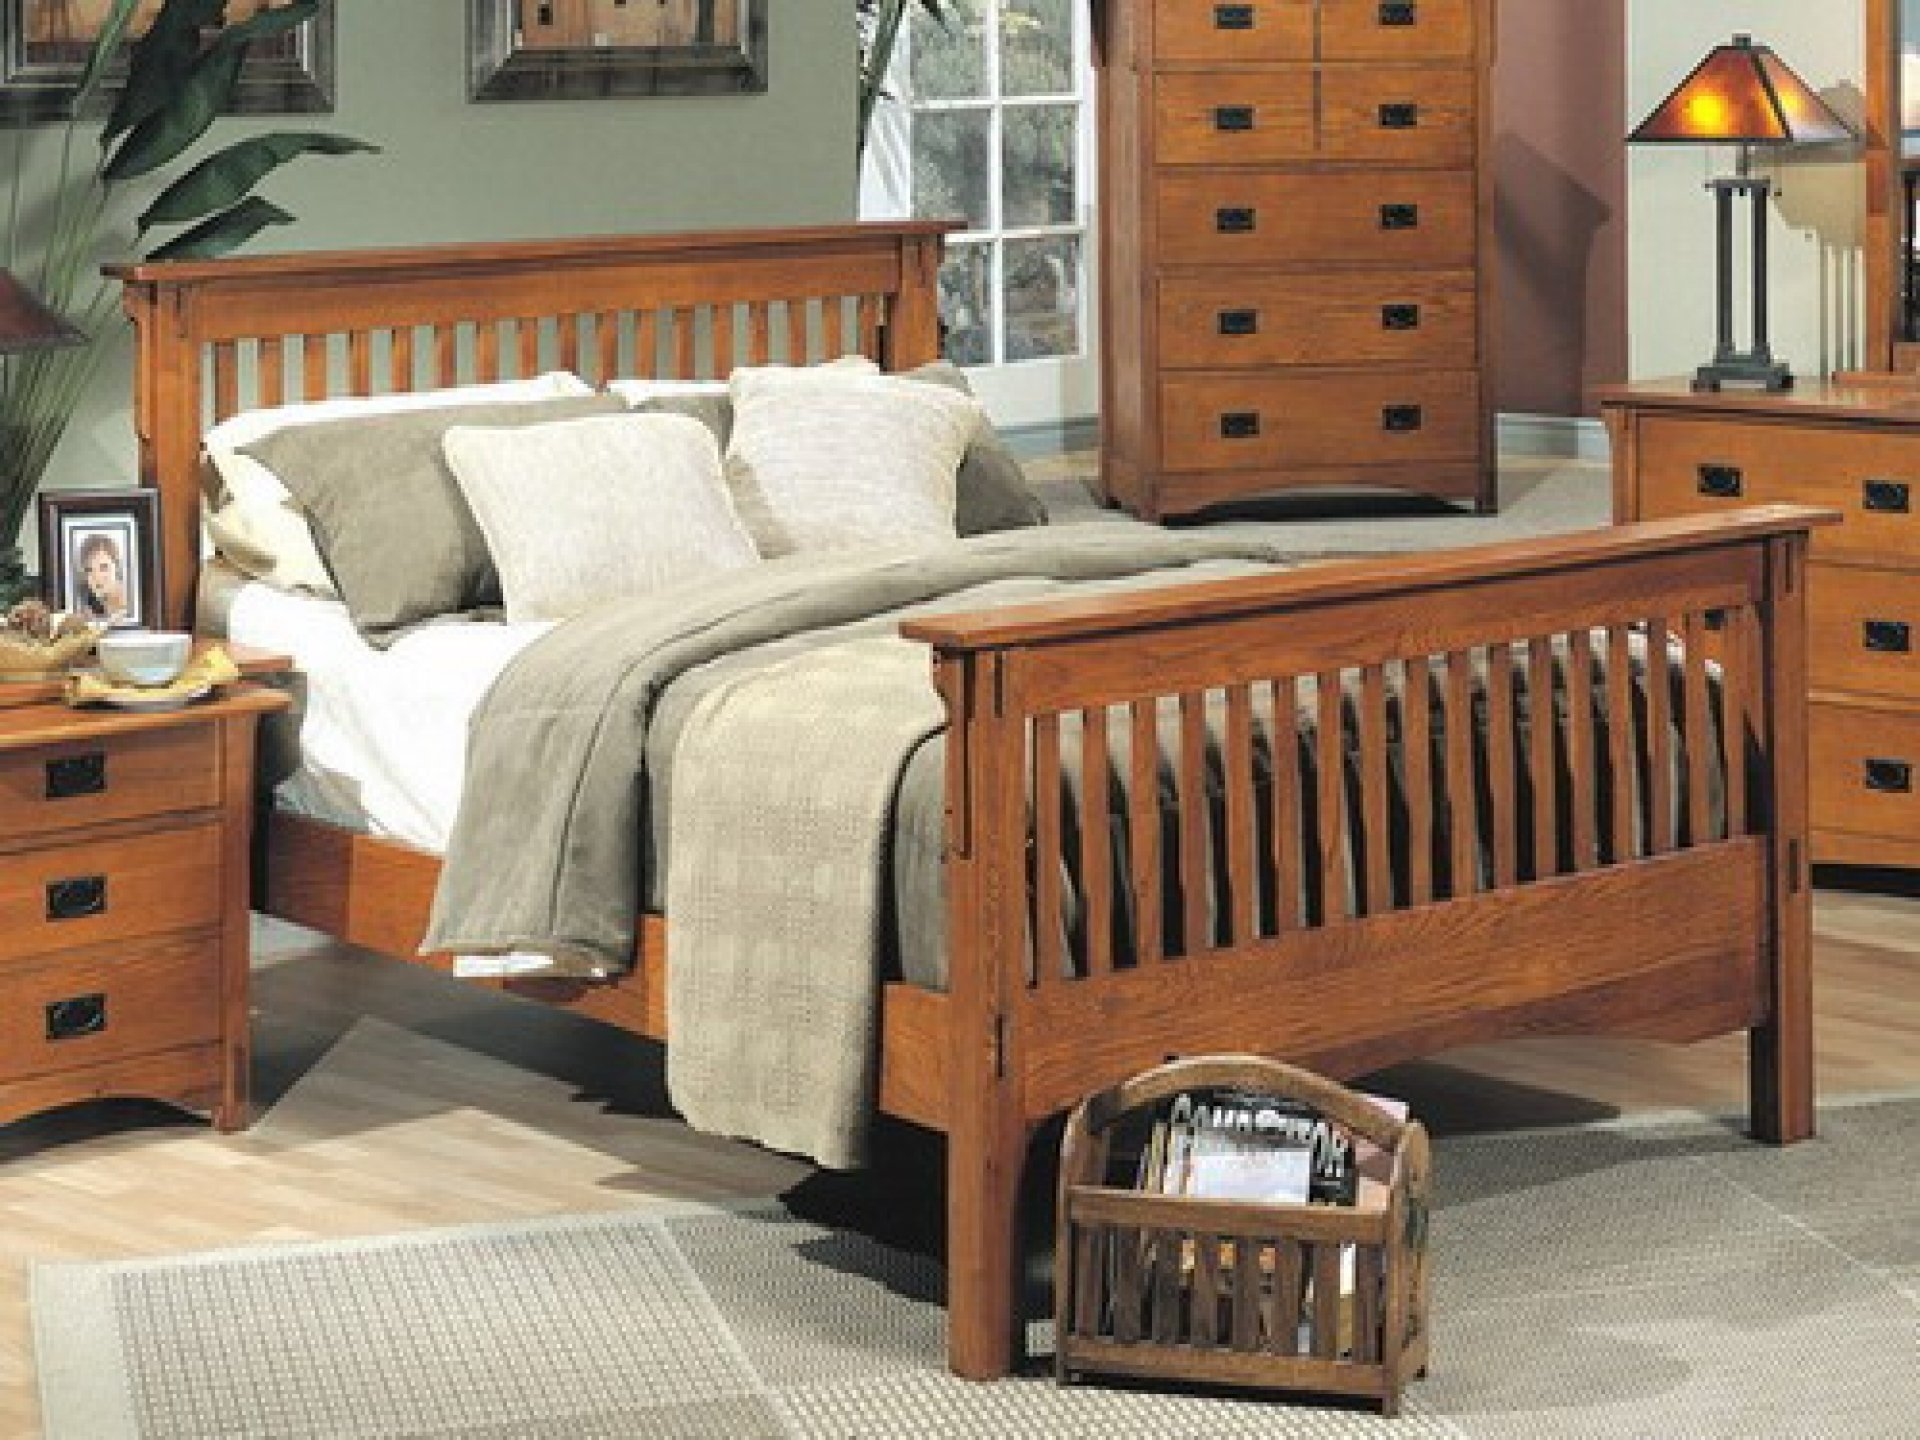 How to build a wooden bed frame 22 interesting ways for Bed styles images